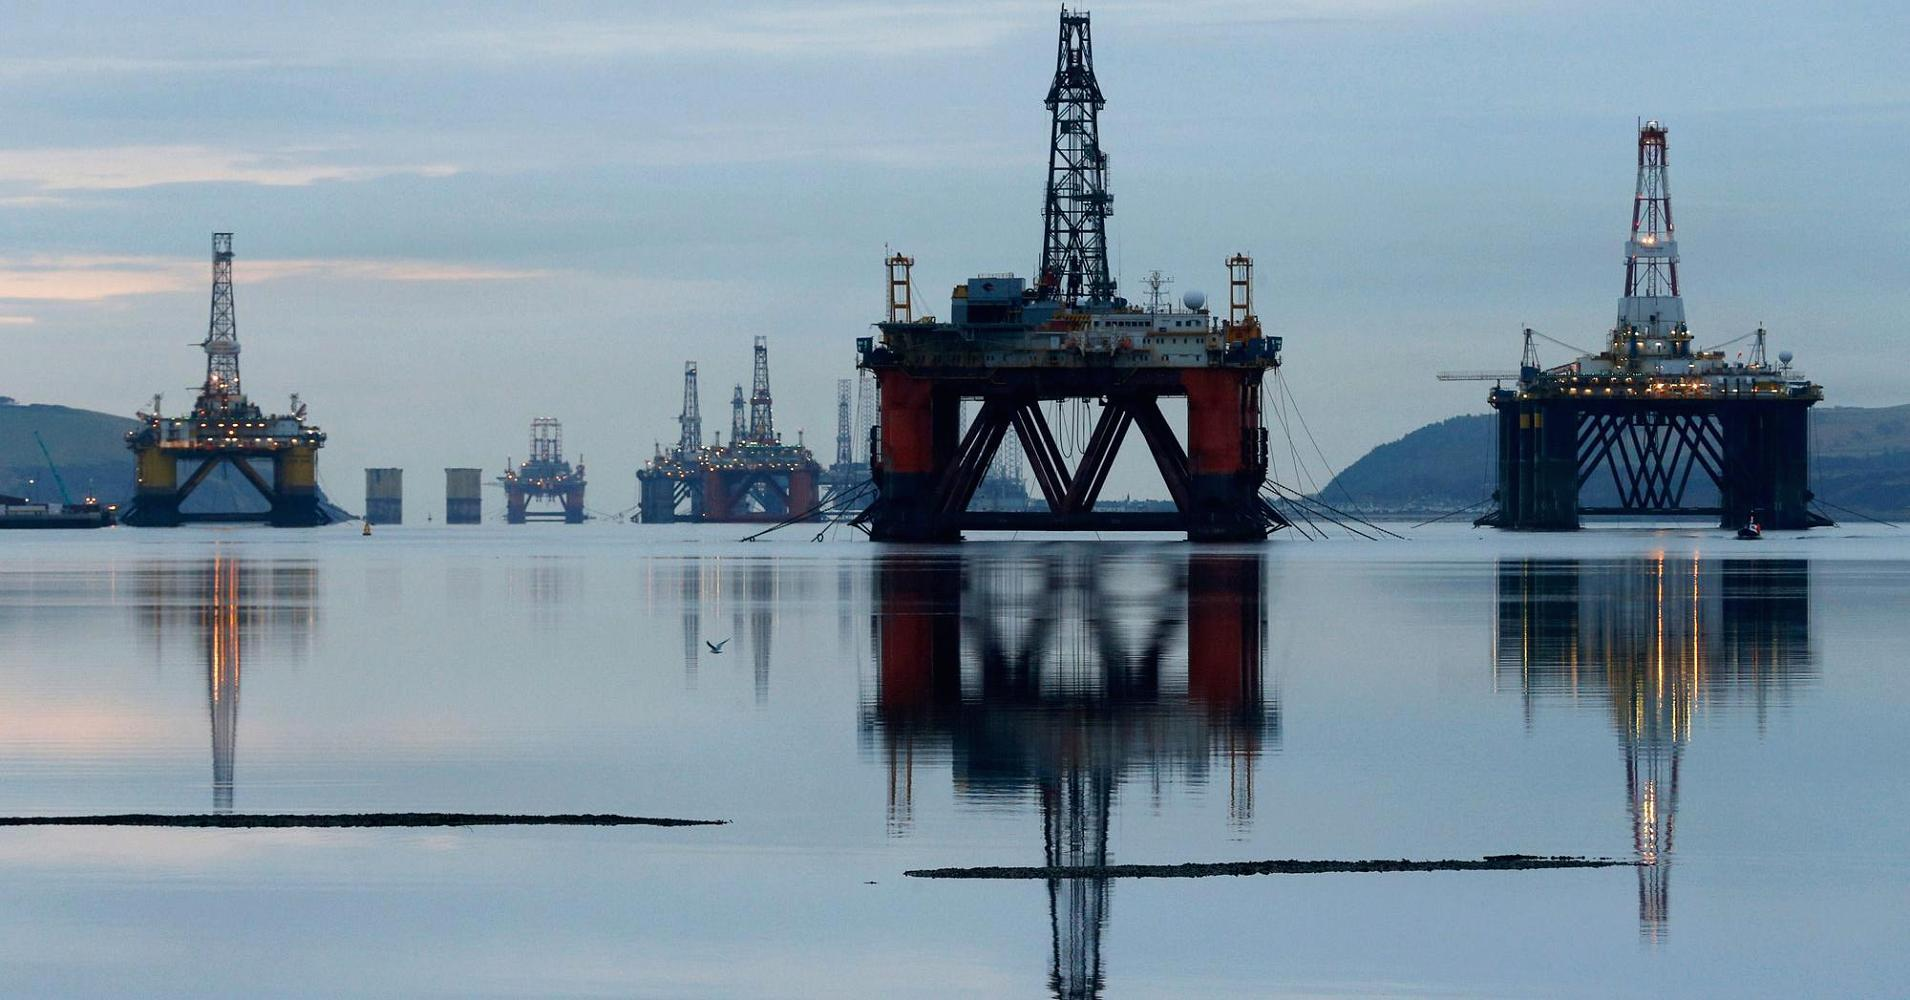 Oil stock dividends to drop by $12B: Markit